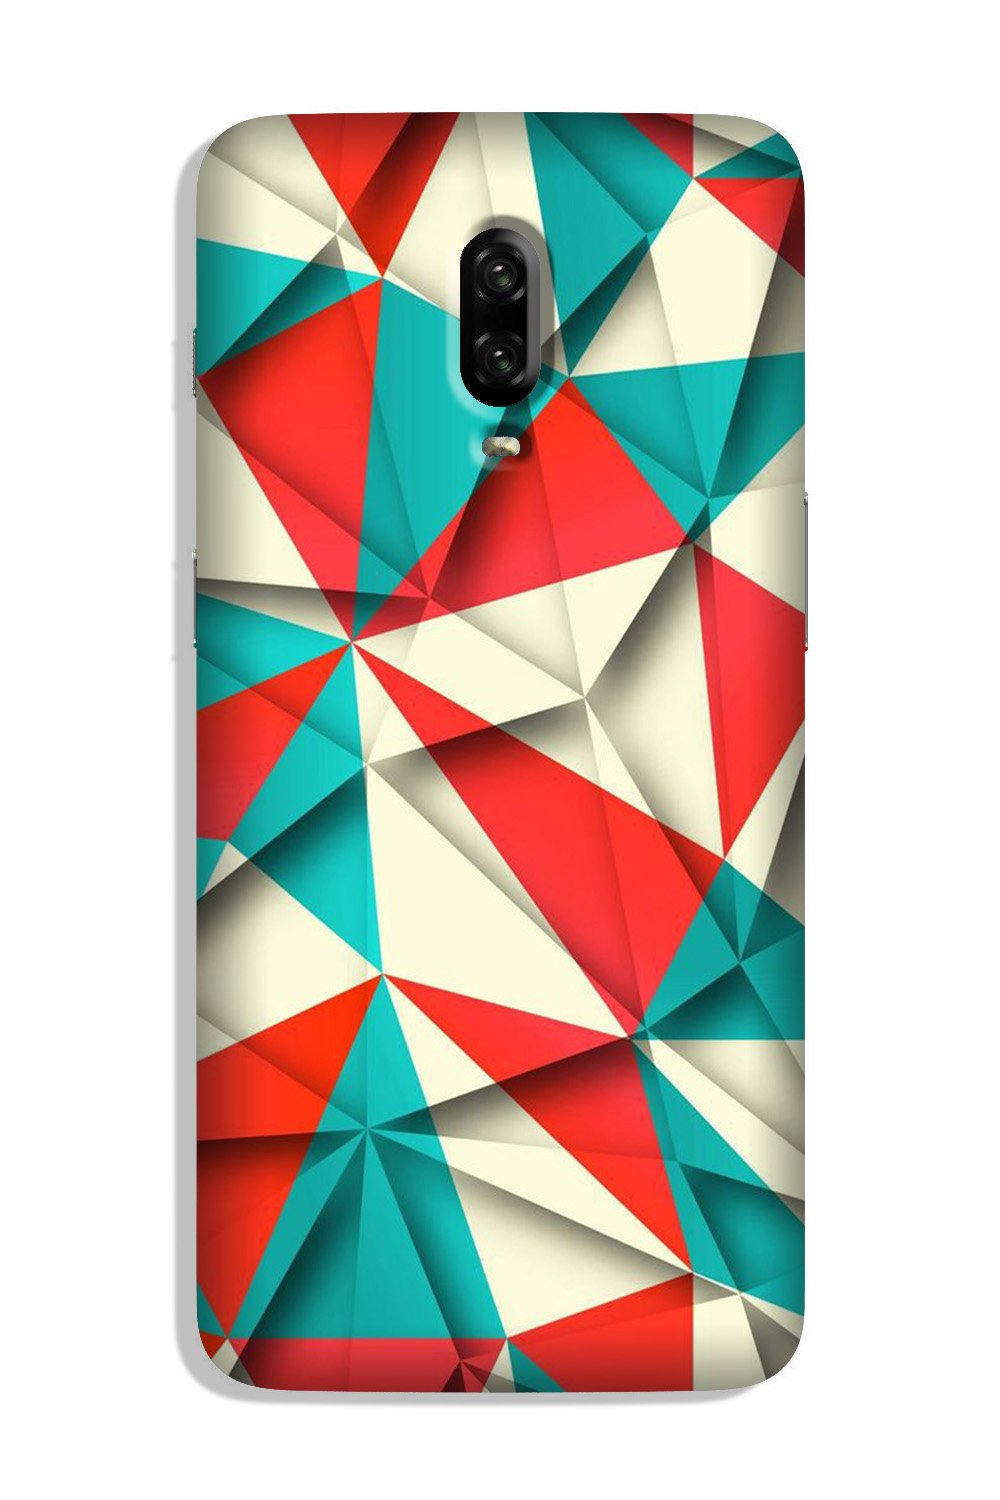 Modern Art Case for OnePlus 6T (Design No. 271)